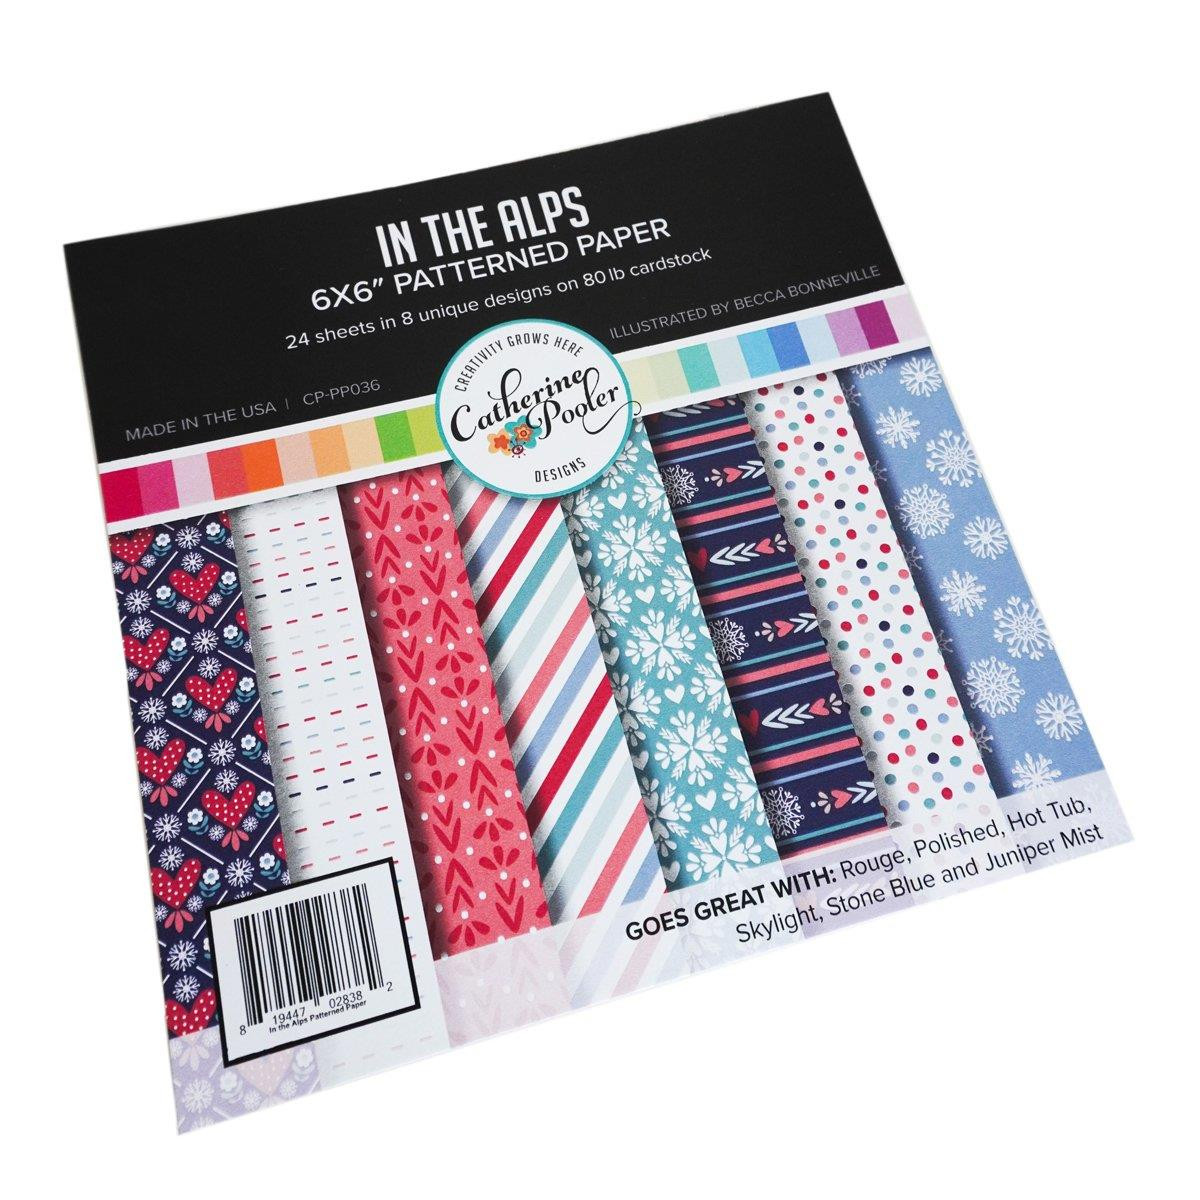 In the Alps, Catherine Pooler Patterned Paper - 819447028382